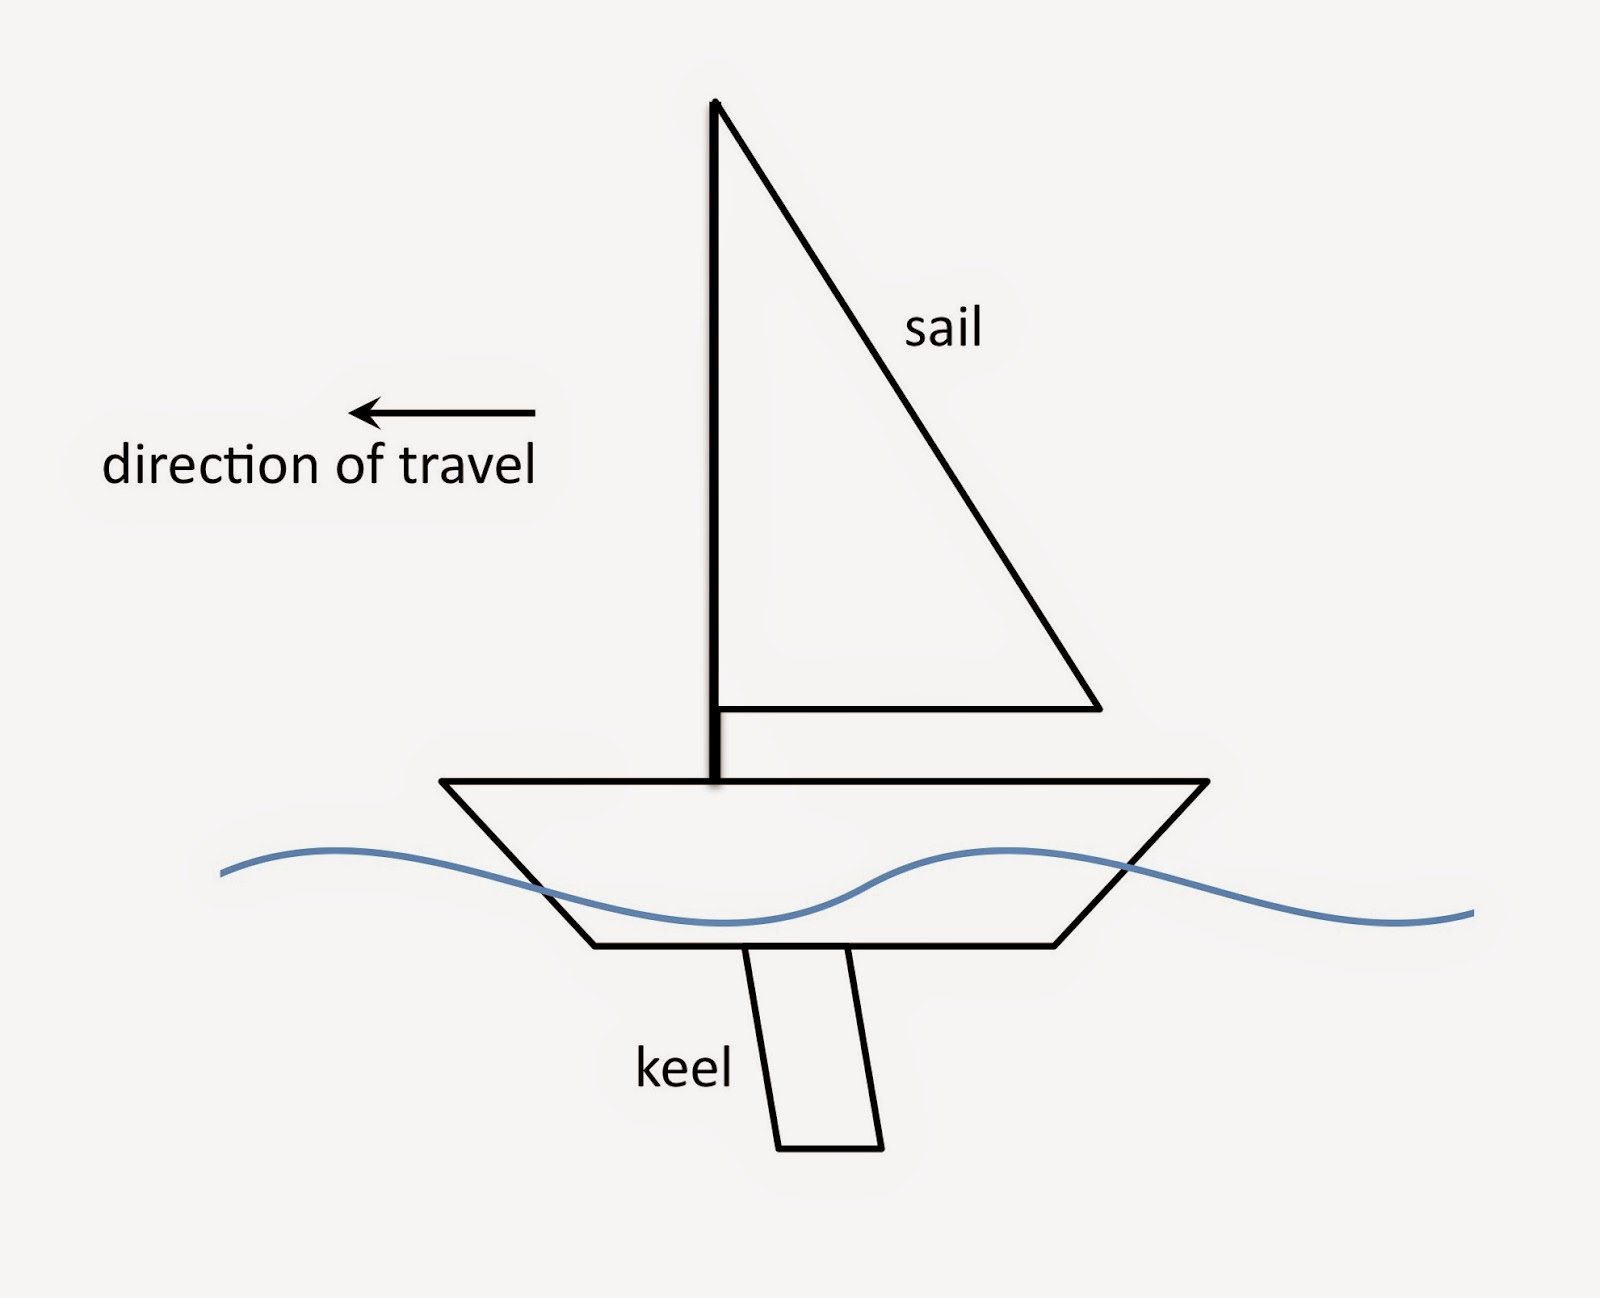 keelboat diagram update your reefing sail magazine physics buzz the physics of sailing how does a sailboat move upwind parts sailing yacht diagram sailing yacht diagram